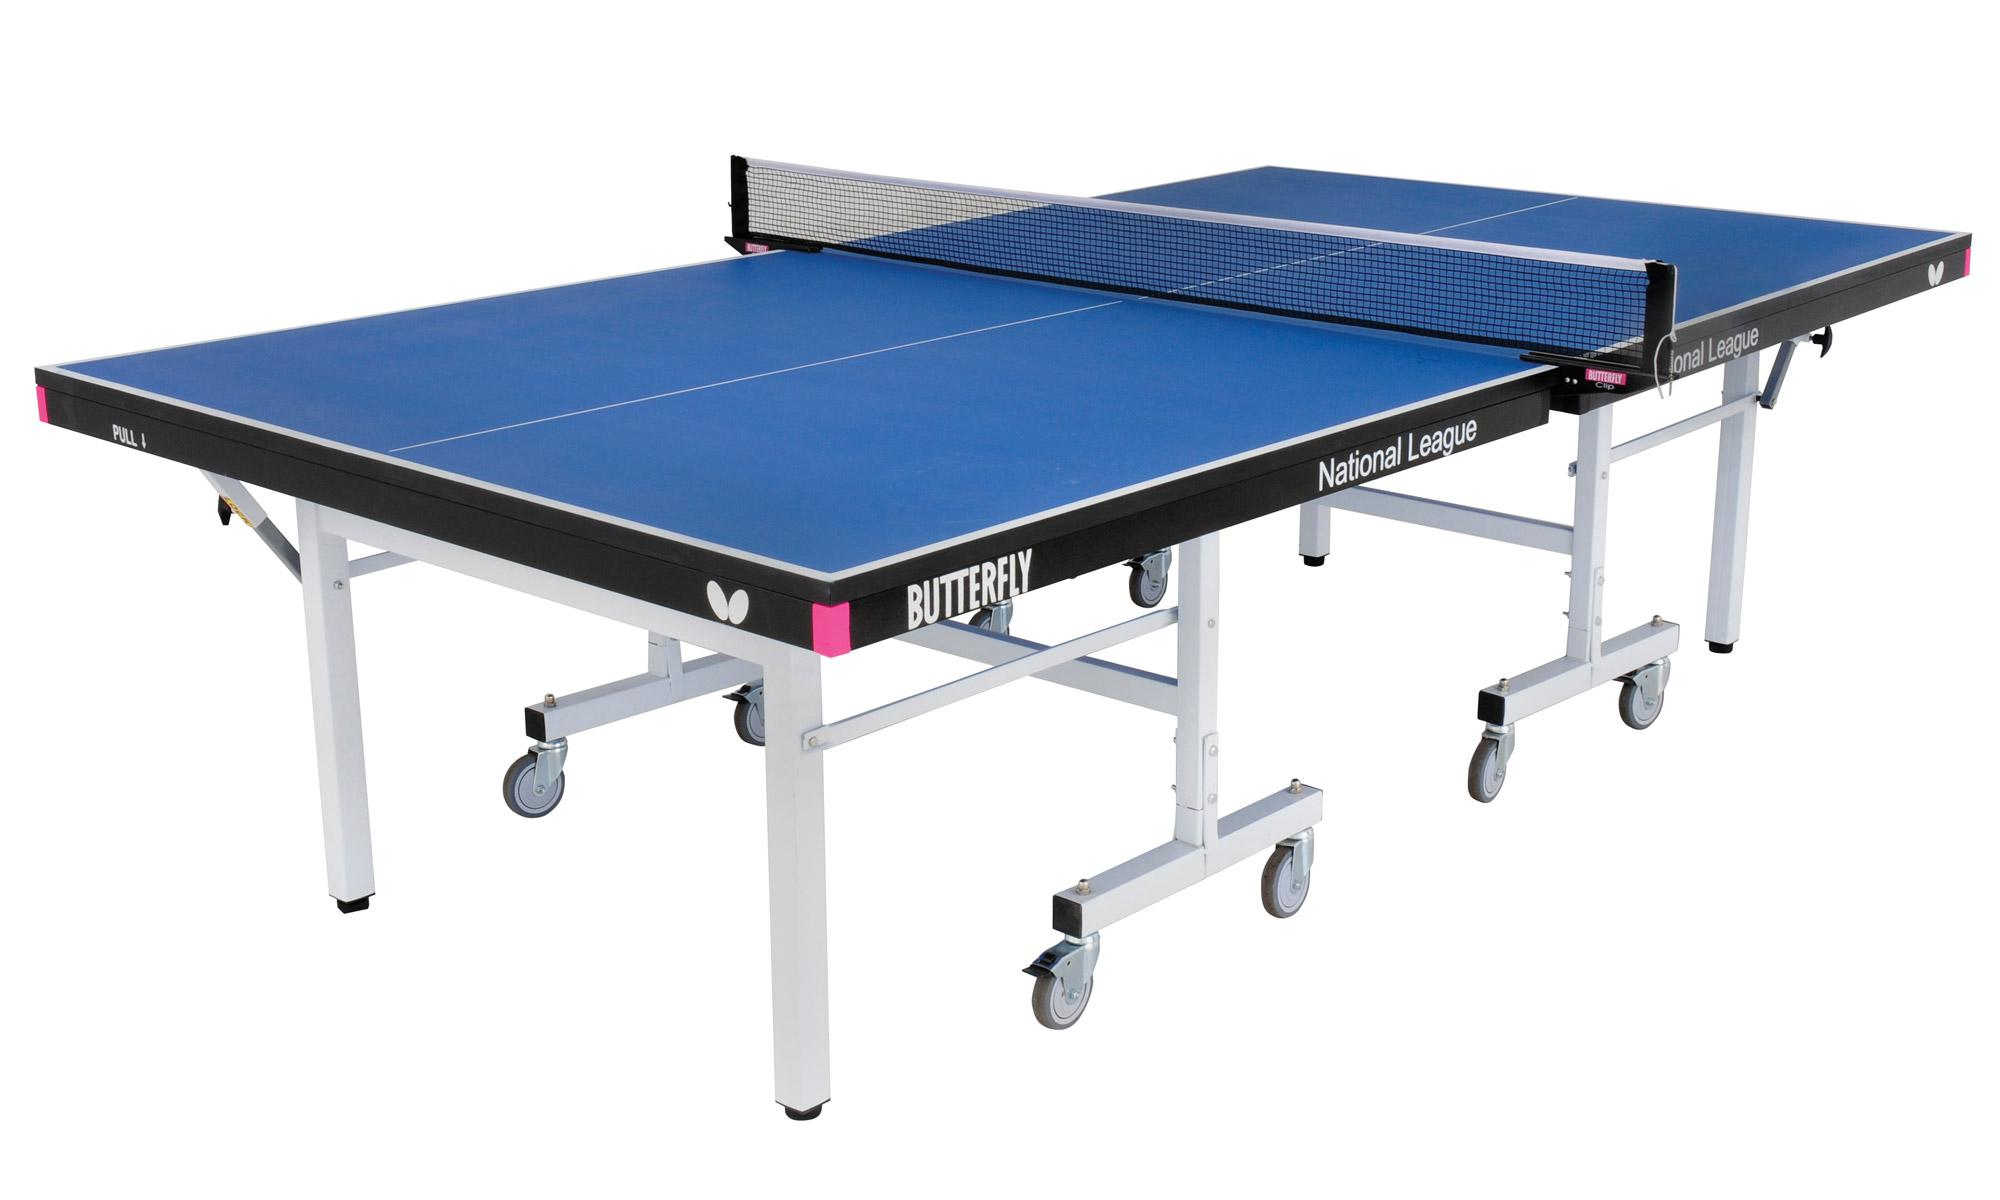 Butterfly National League 25 Indoor Table Tennis Table